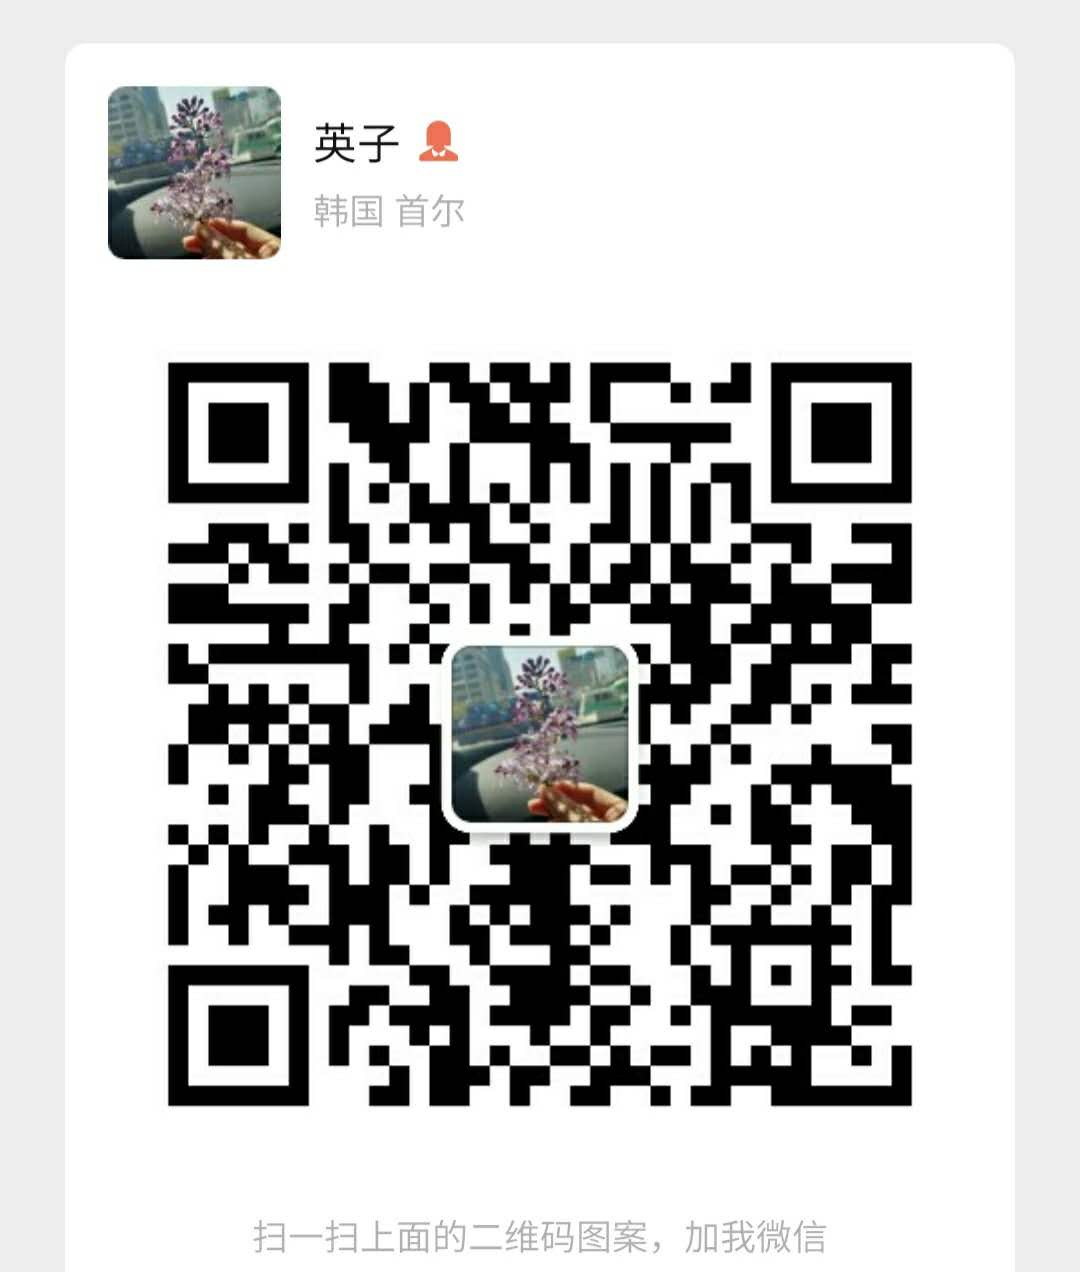 .\..\..\..\..\..\..\AppData\Local\Temp\WeChat Files\e09a0b8fcd80a9e957b0e9bdac32f755_.jpg